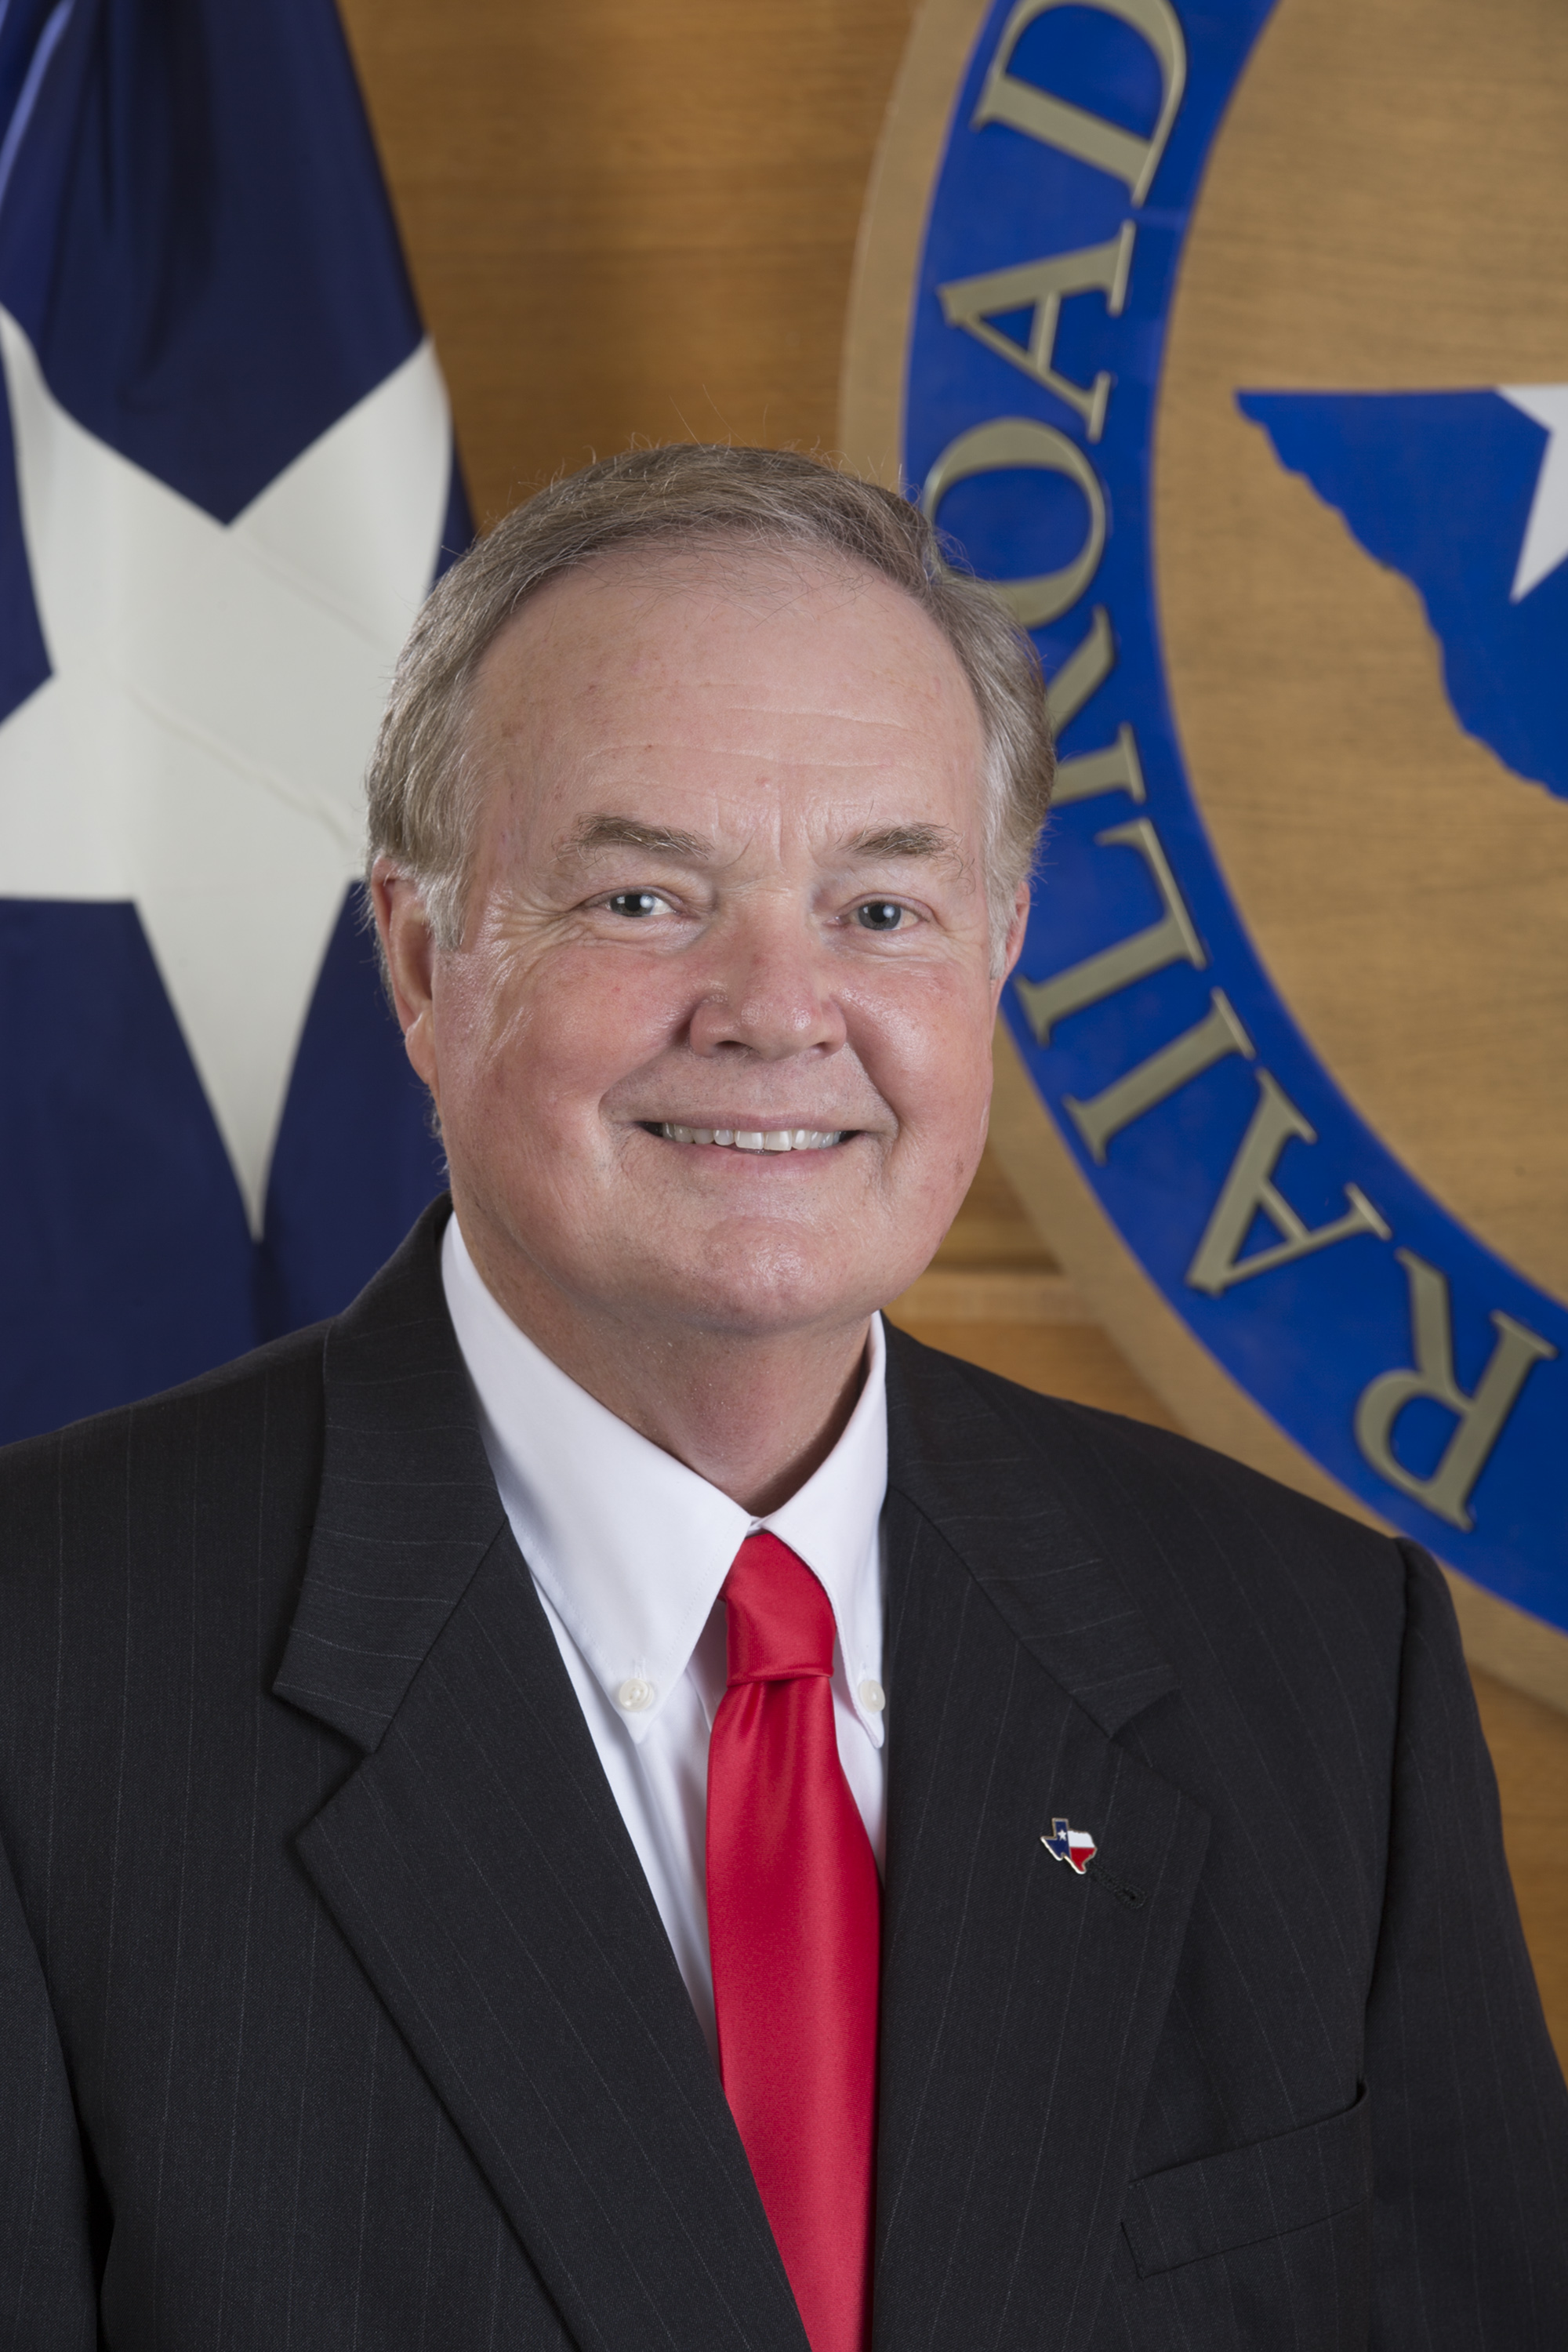 Speaker: Railroad Commissioner Wayne Christian